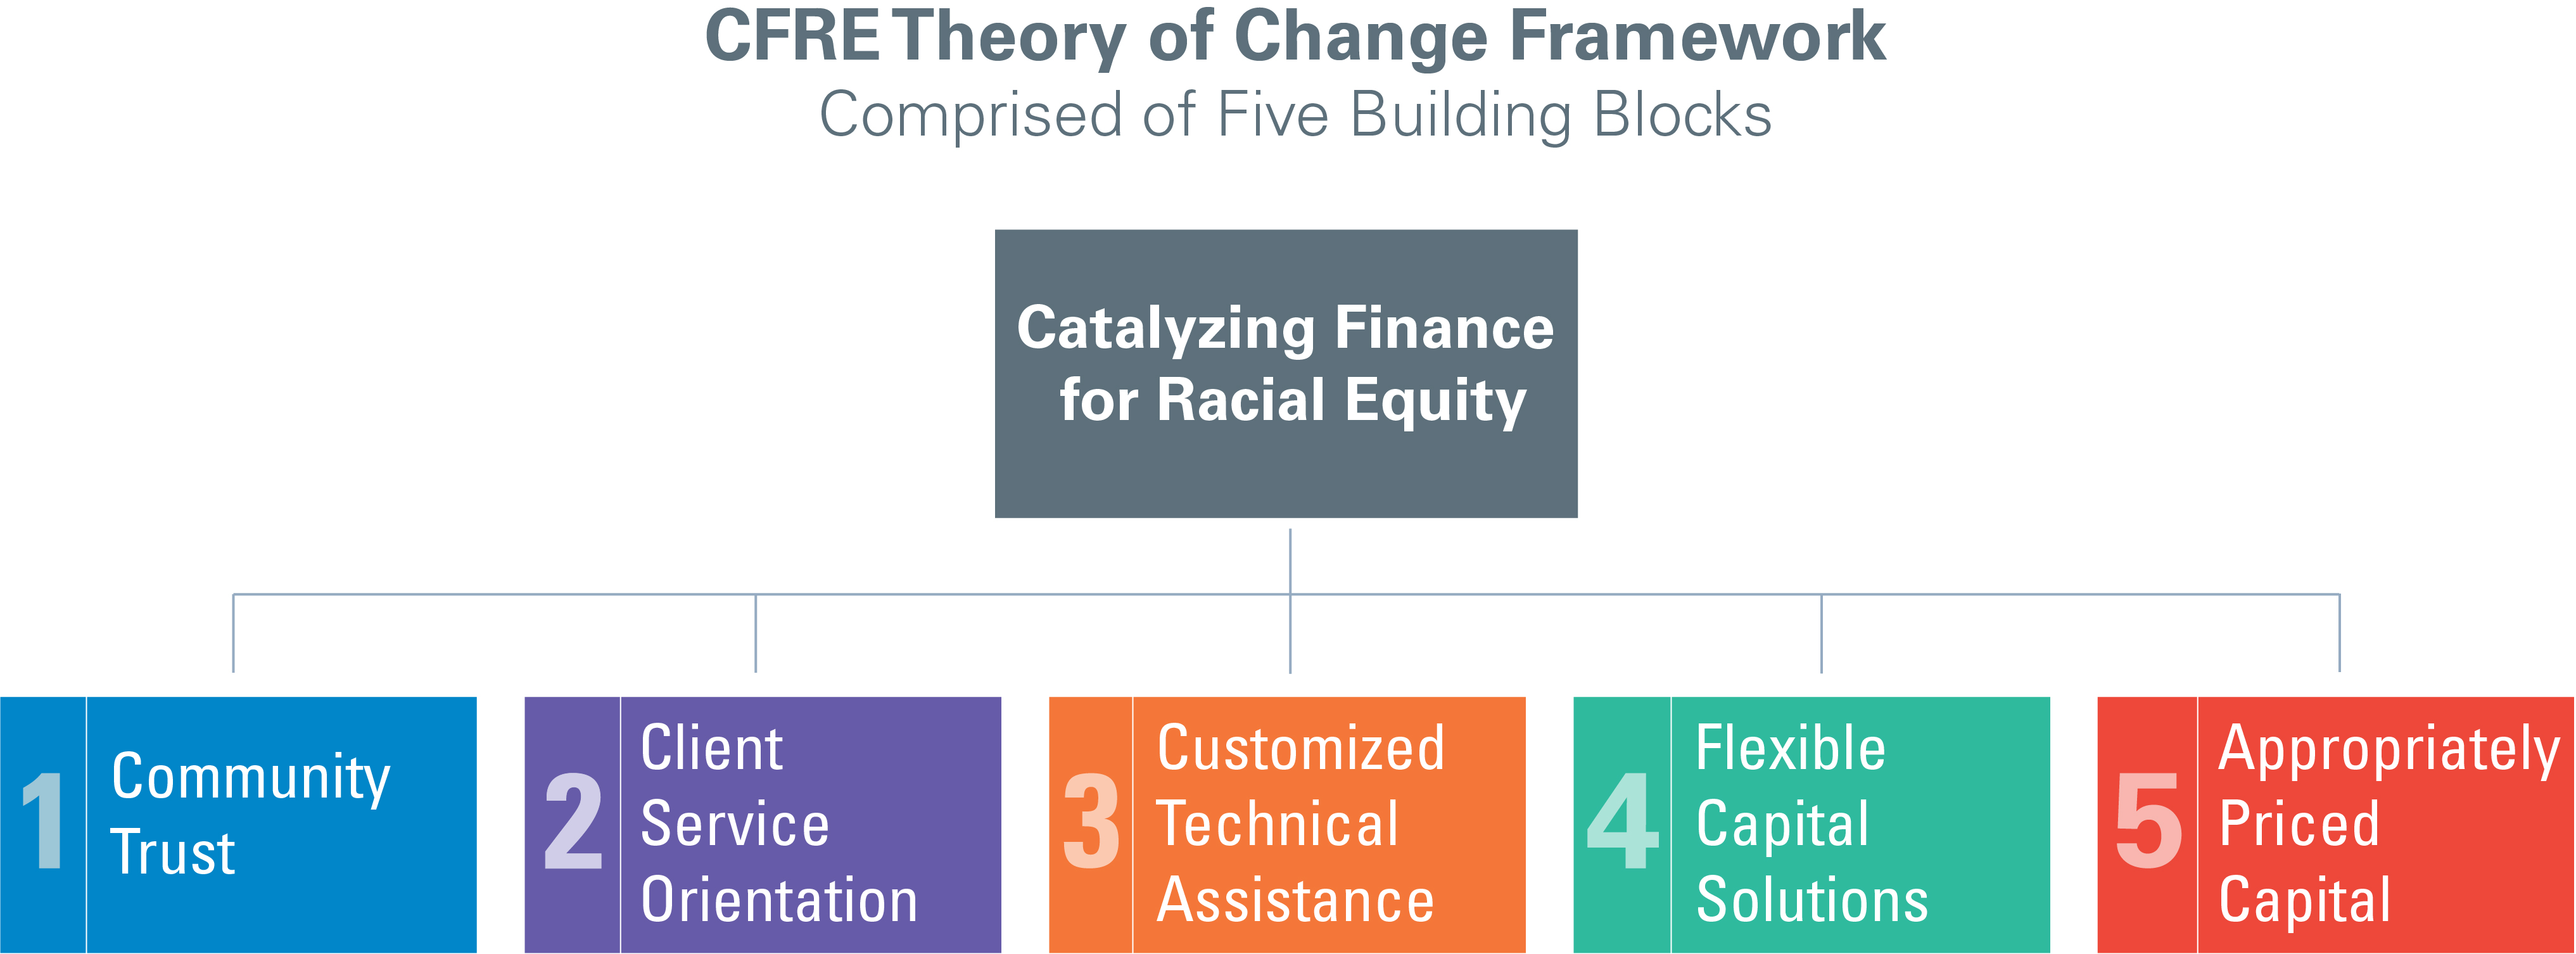 CFRE Theory of Change Framework with five building blocks: client service orientation, customized TA, appropriately priced capital flexible capital, and